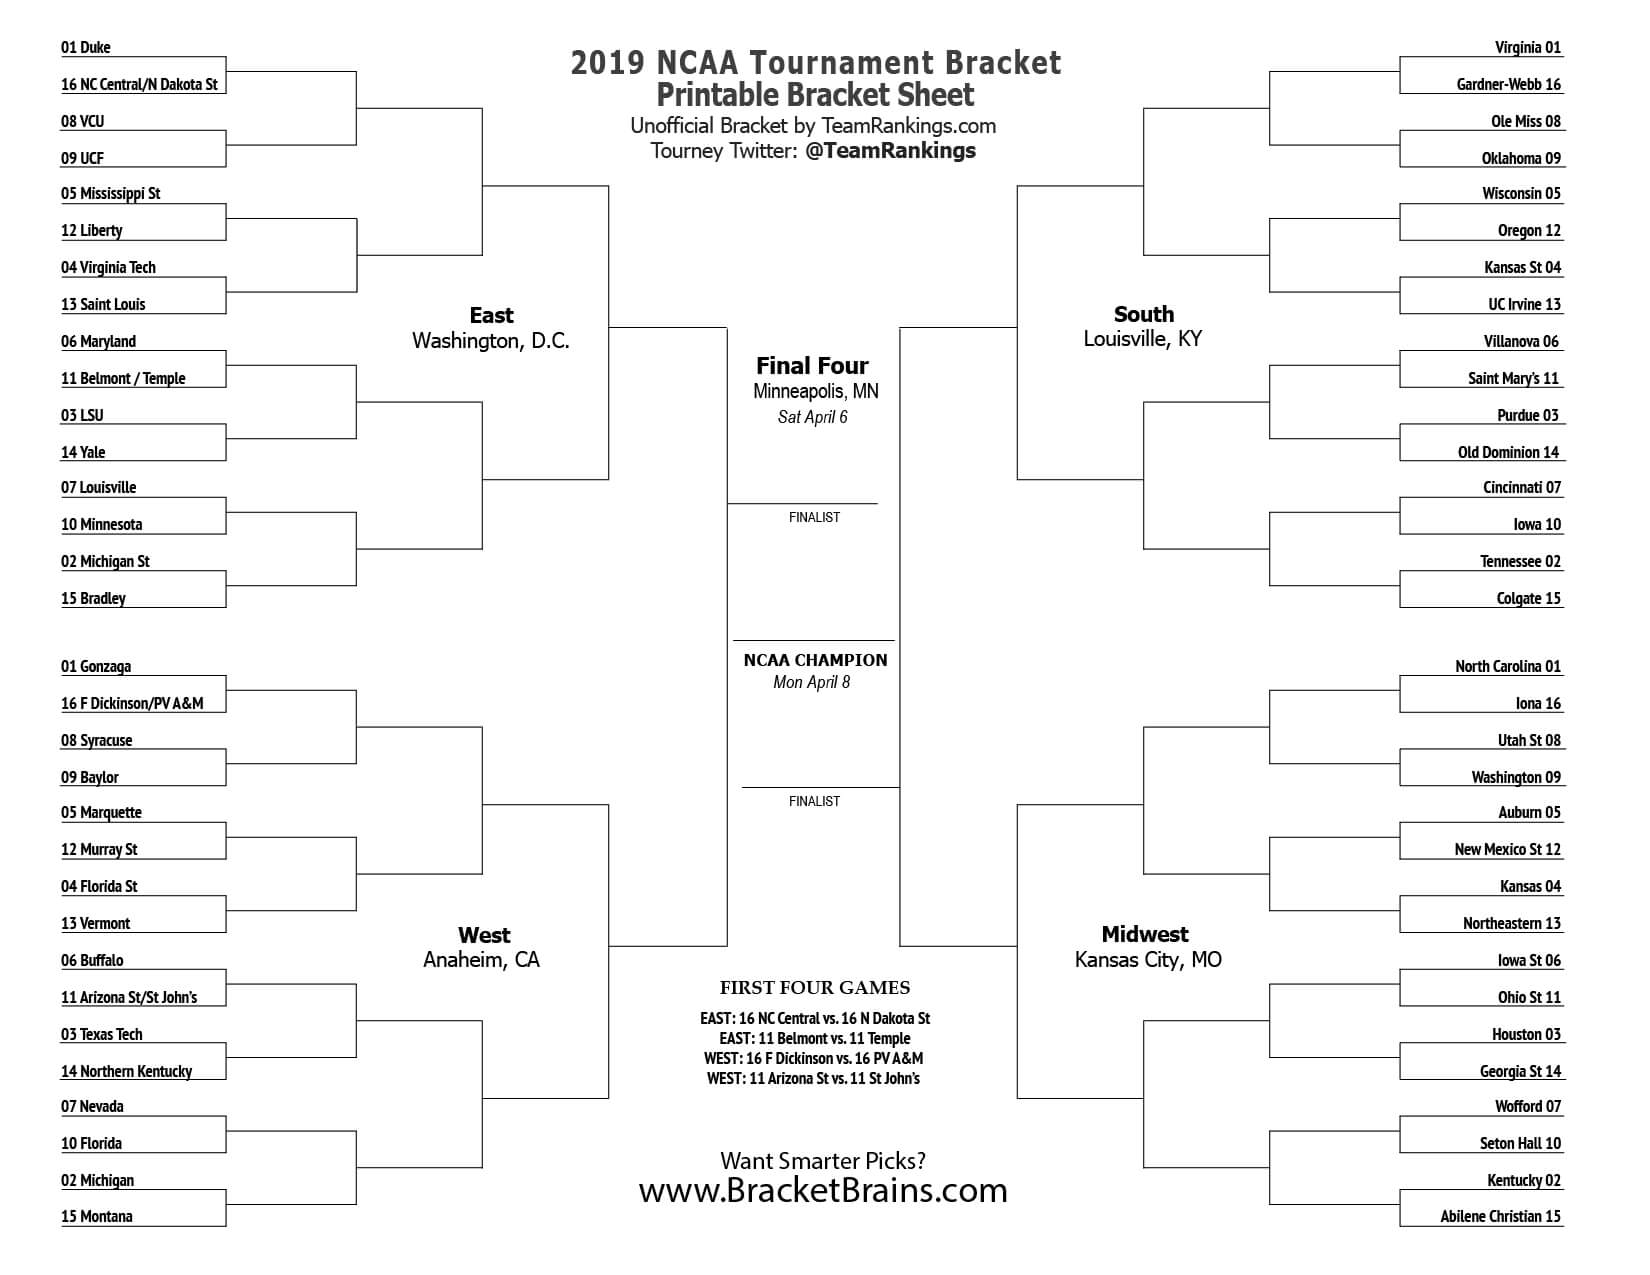 picture regarding Printable Bowl Schedule With Point Spreads named NCAA Printable Bracket 2019 -- Totally free March Insanity Brackets